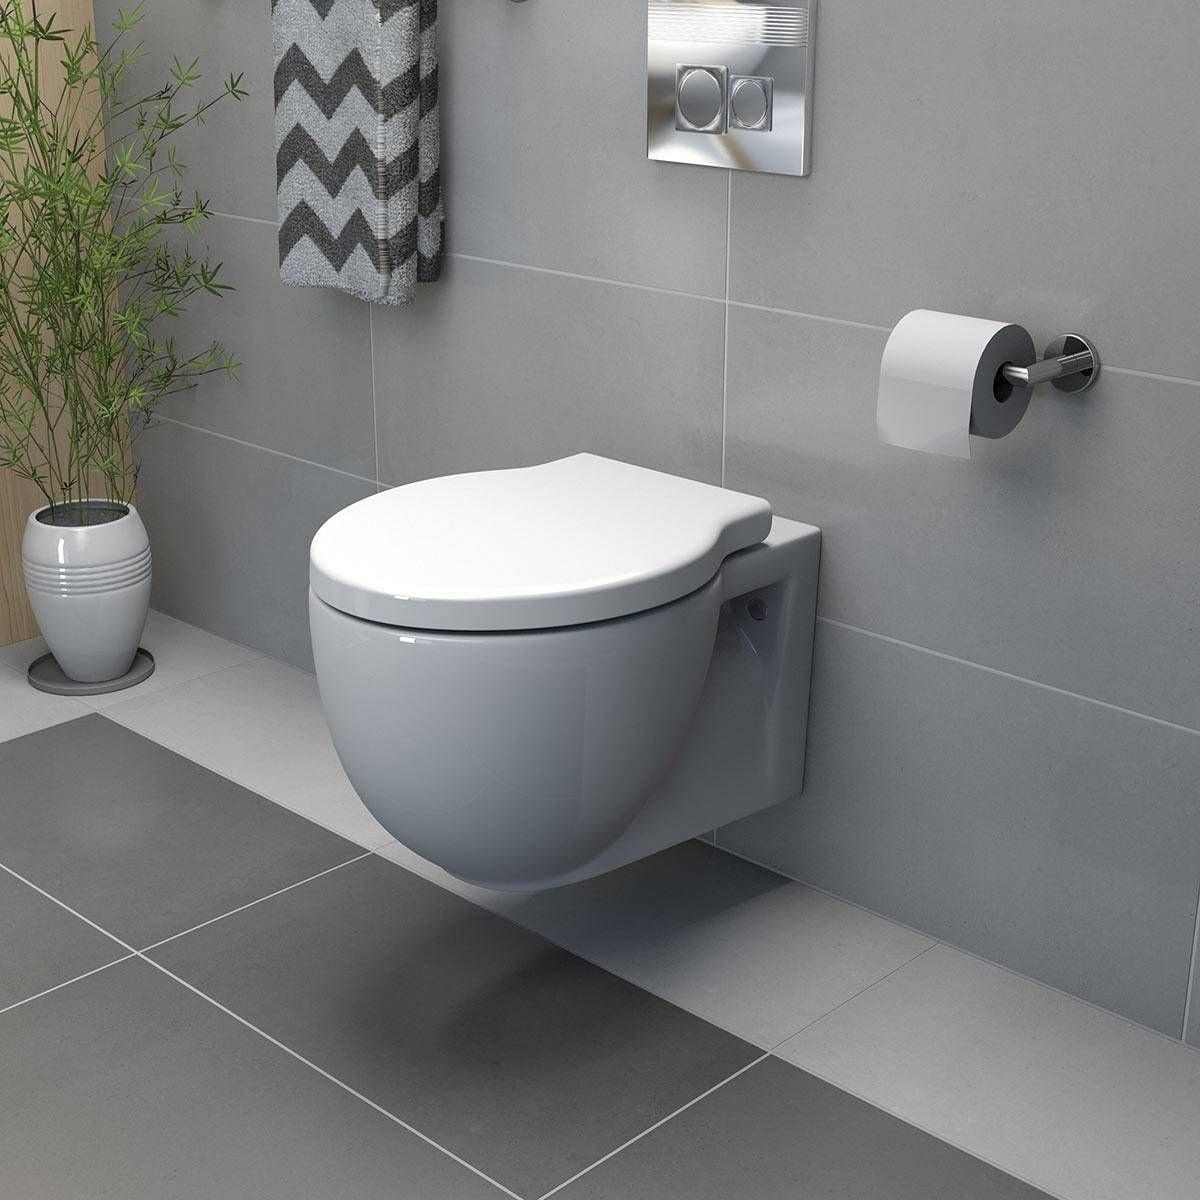 Commode Design Http Victoriaplumb Toilets And Basins Toilets